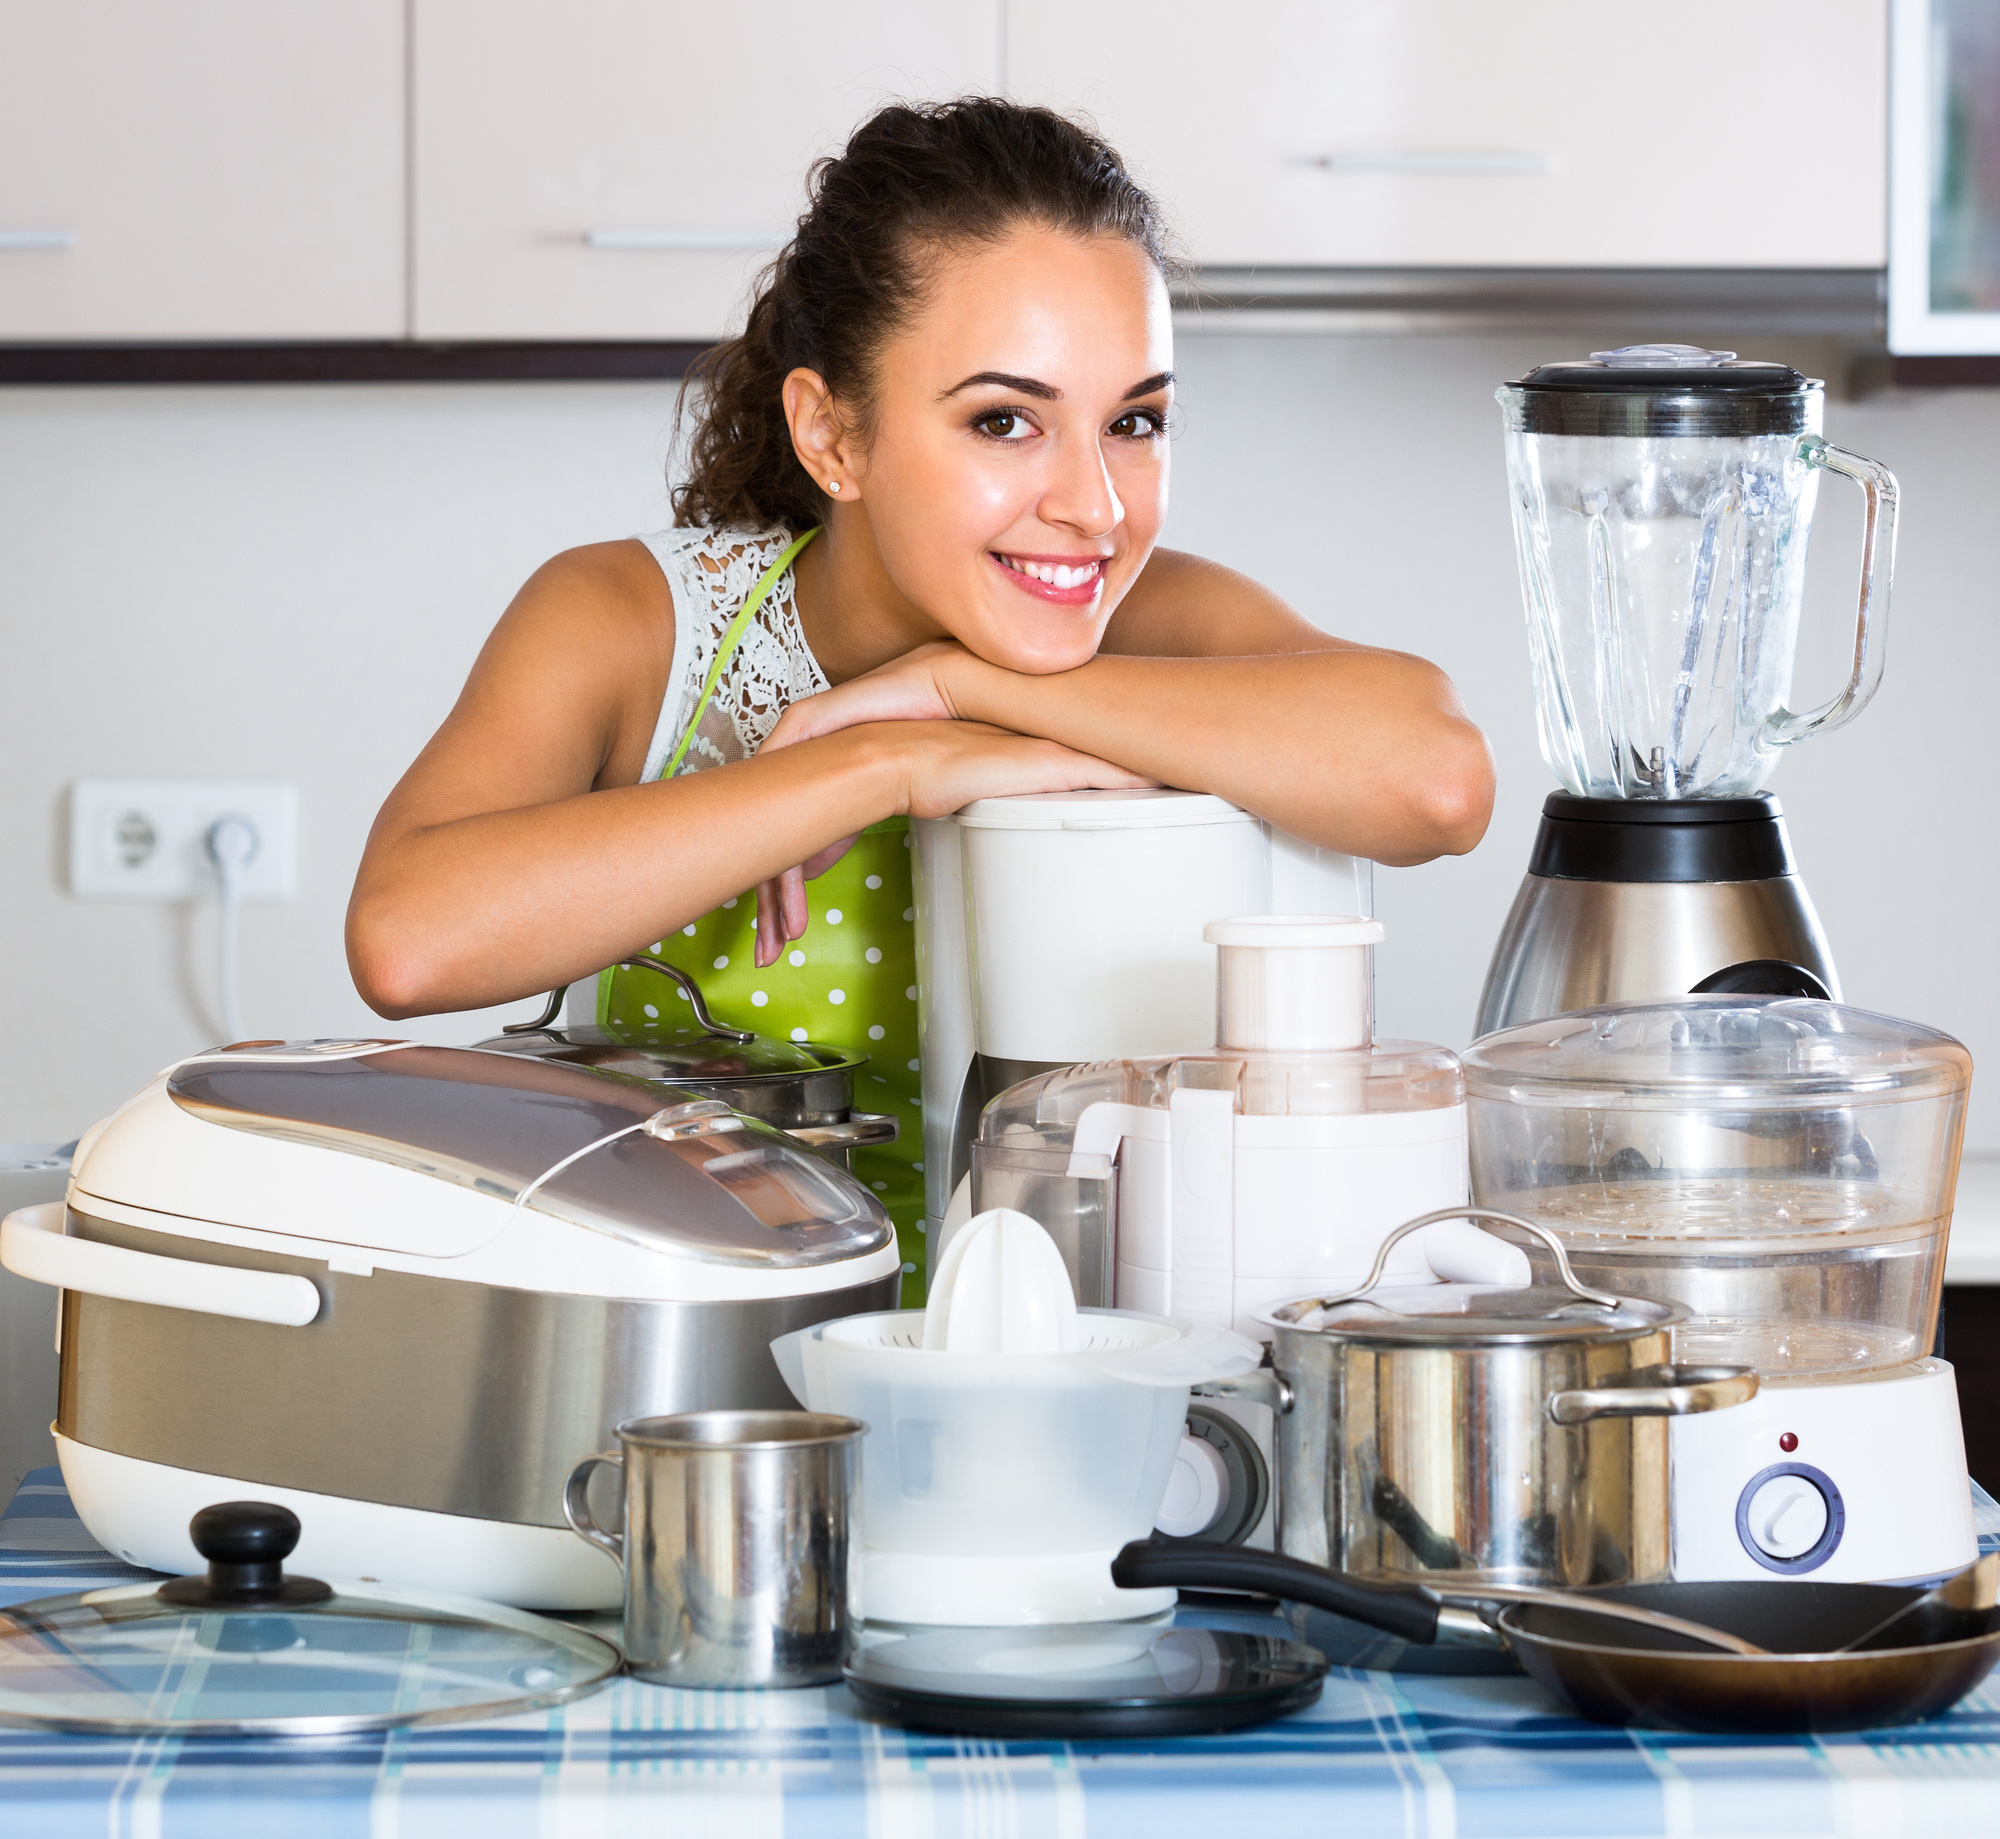 The Top 5 Must Have Kitchen Appliances For Your Home